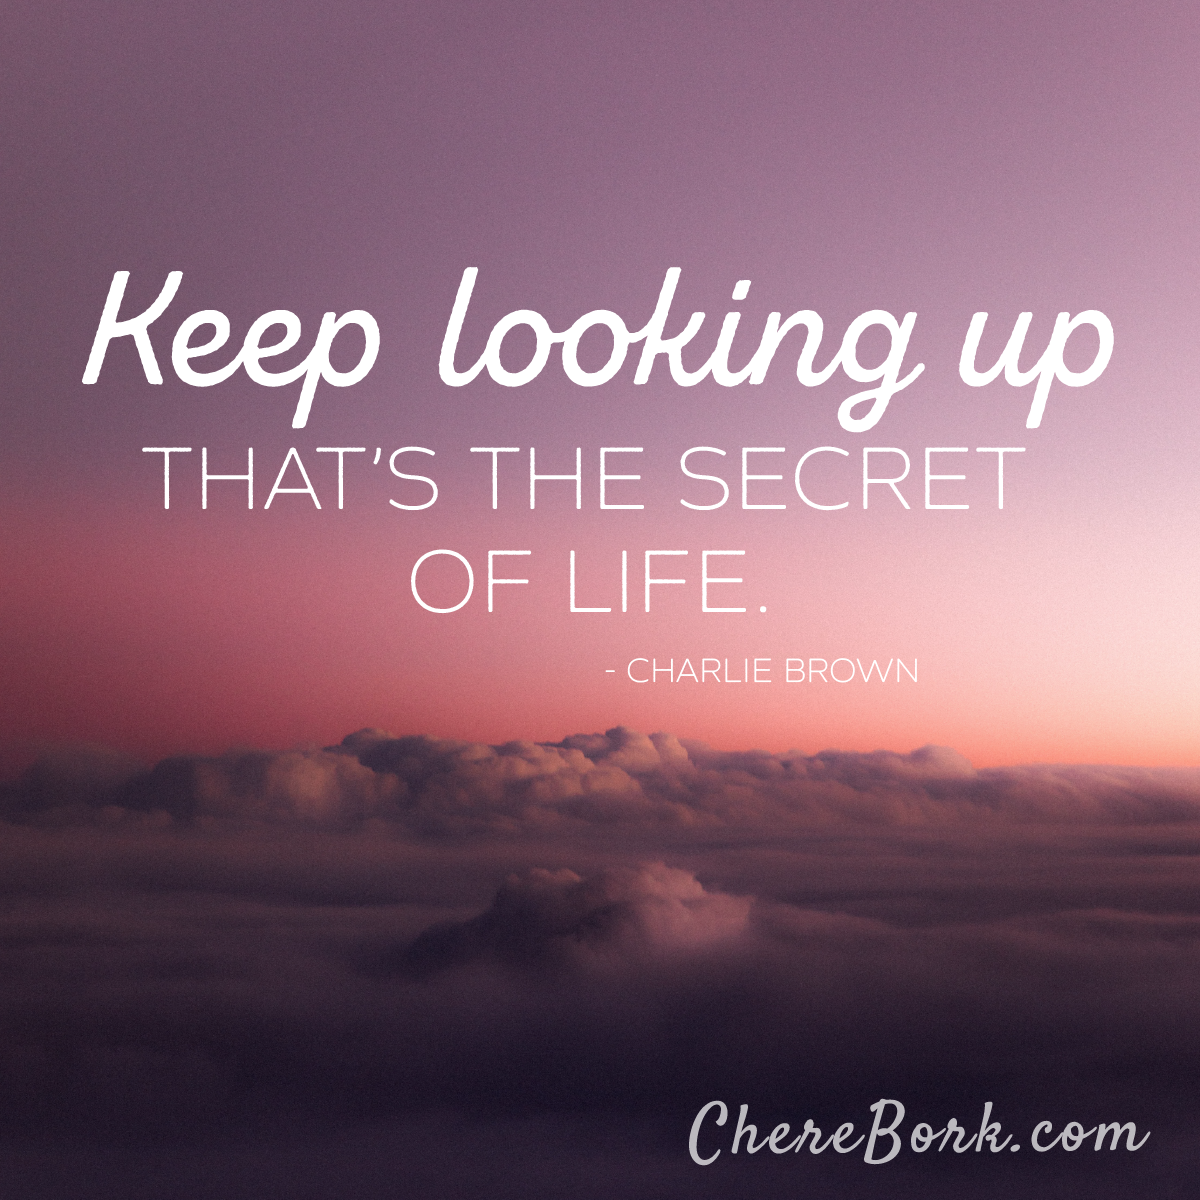 Keep looking up. That's the secret of life. -Charlie Brown